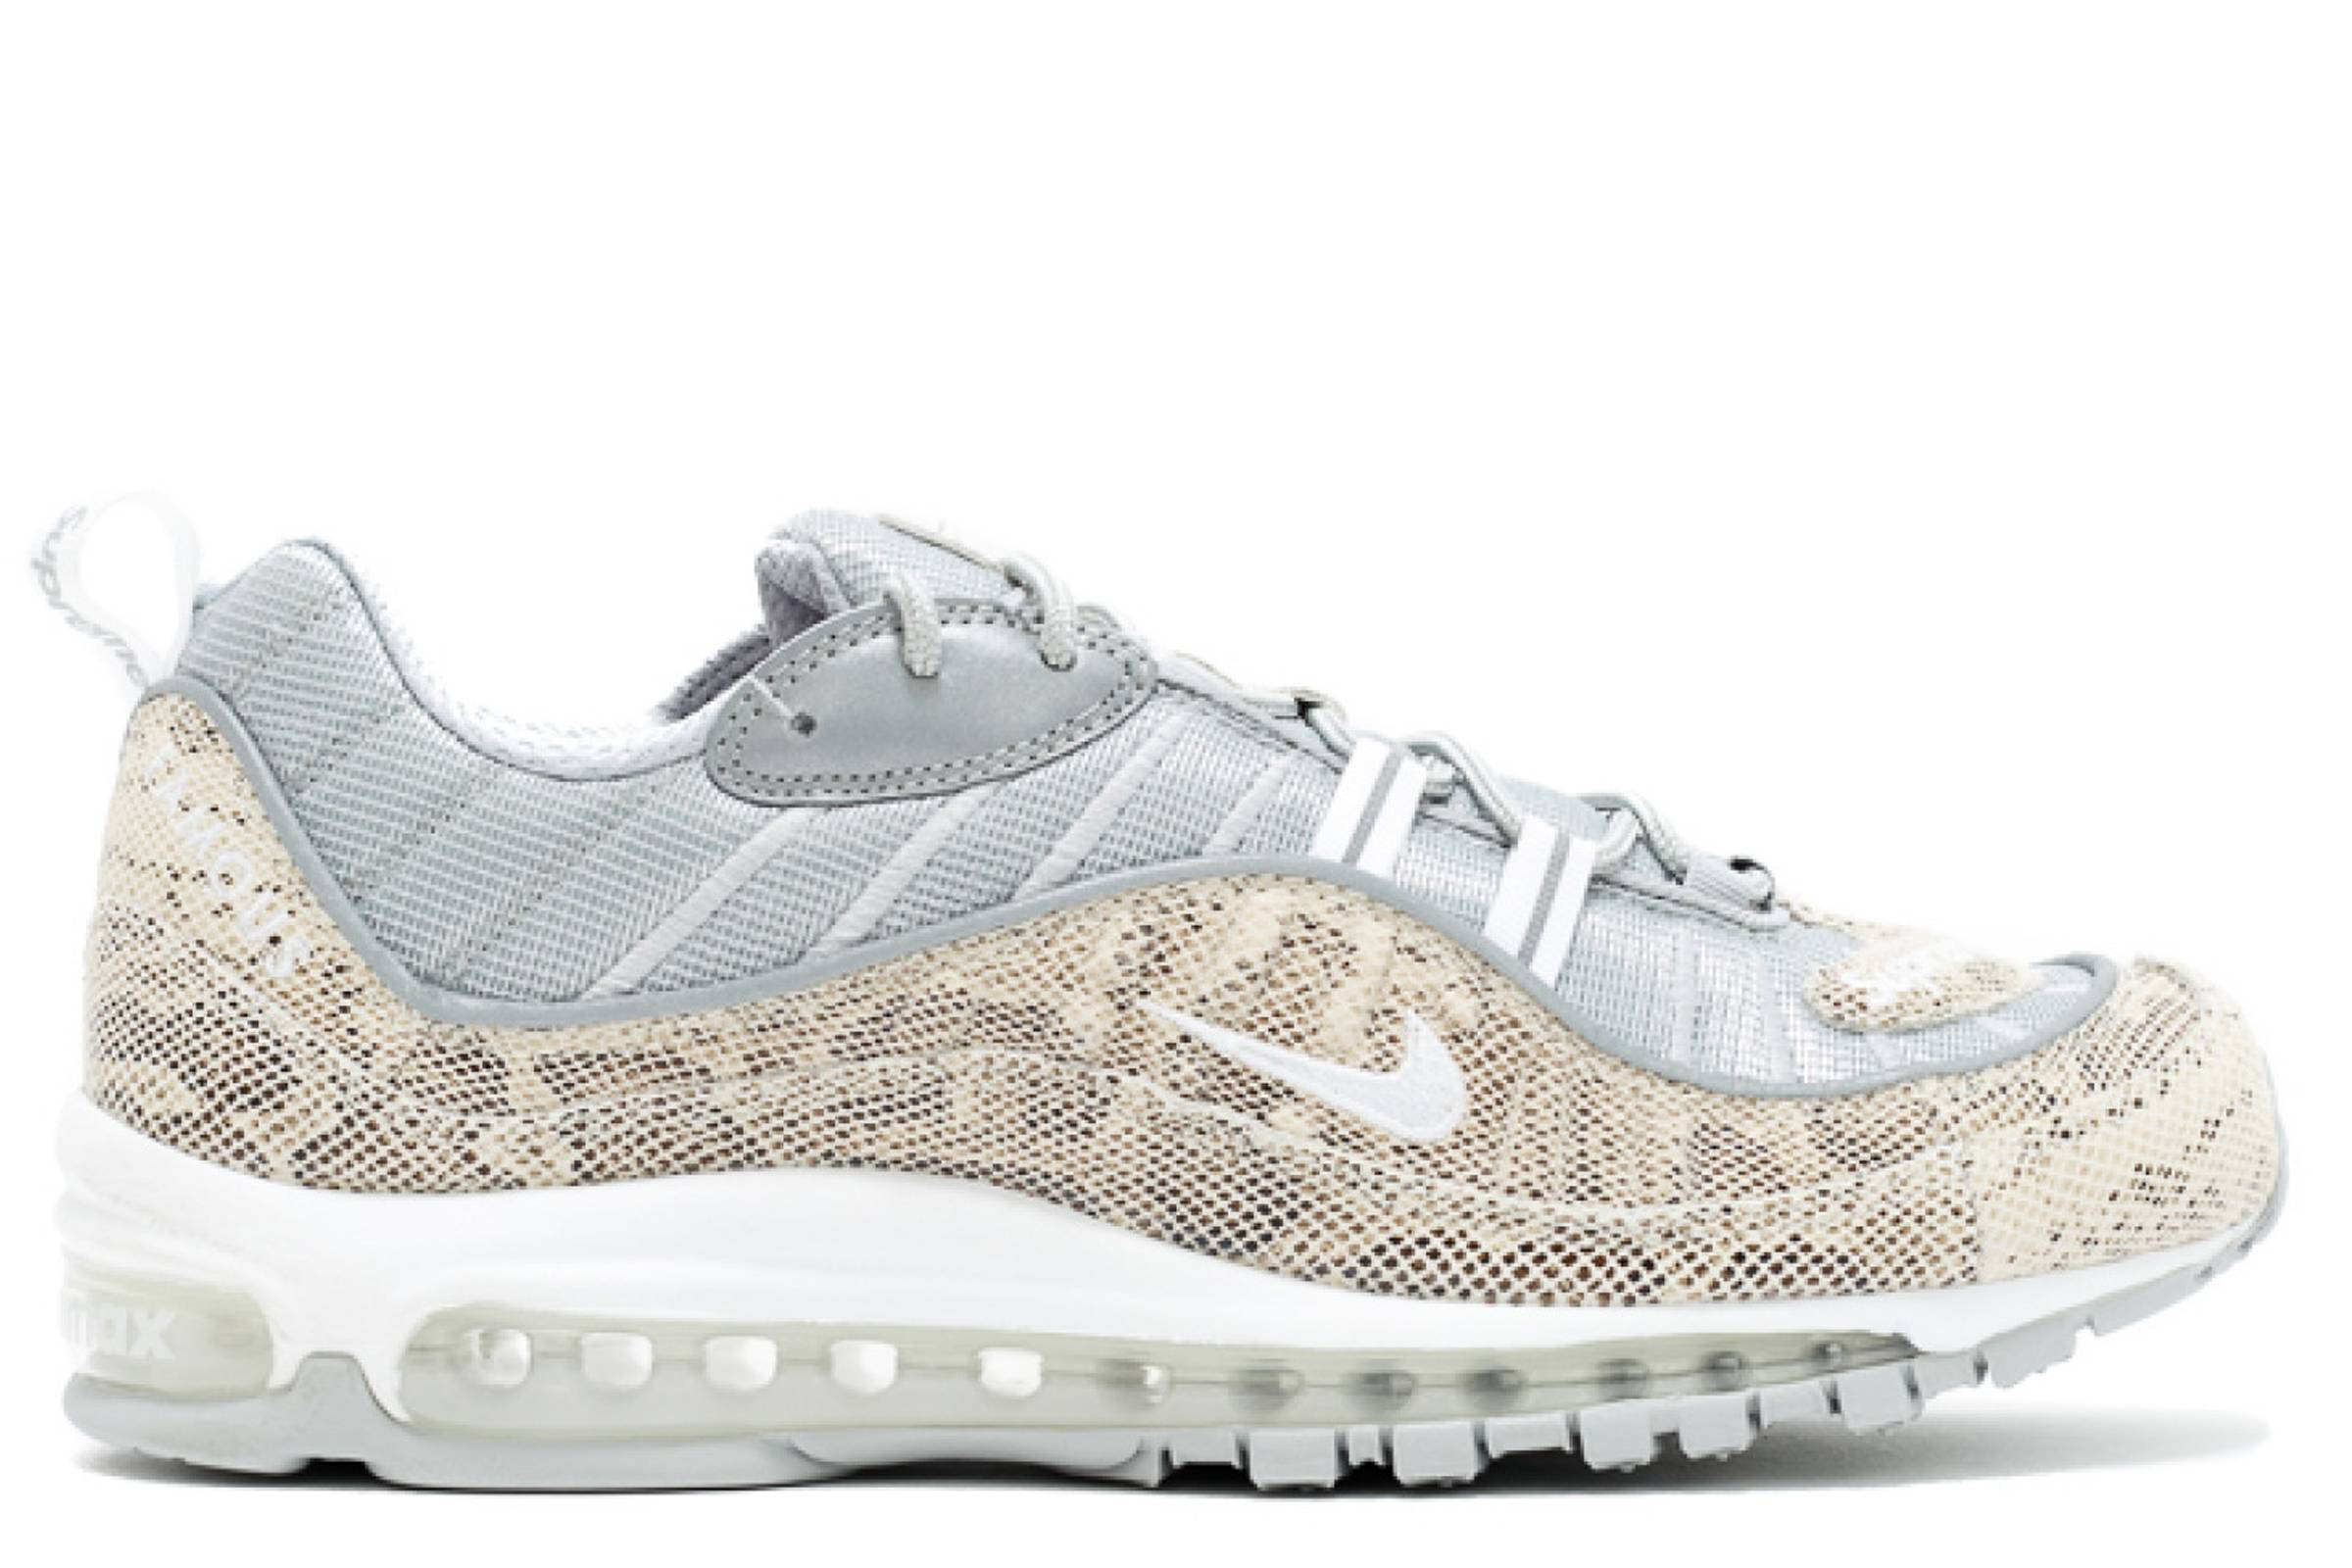 official photos 00d73 27938 Air Max 98 Supreme Snakeskin